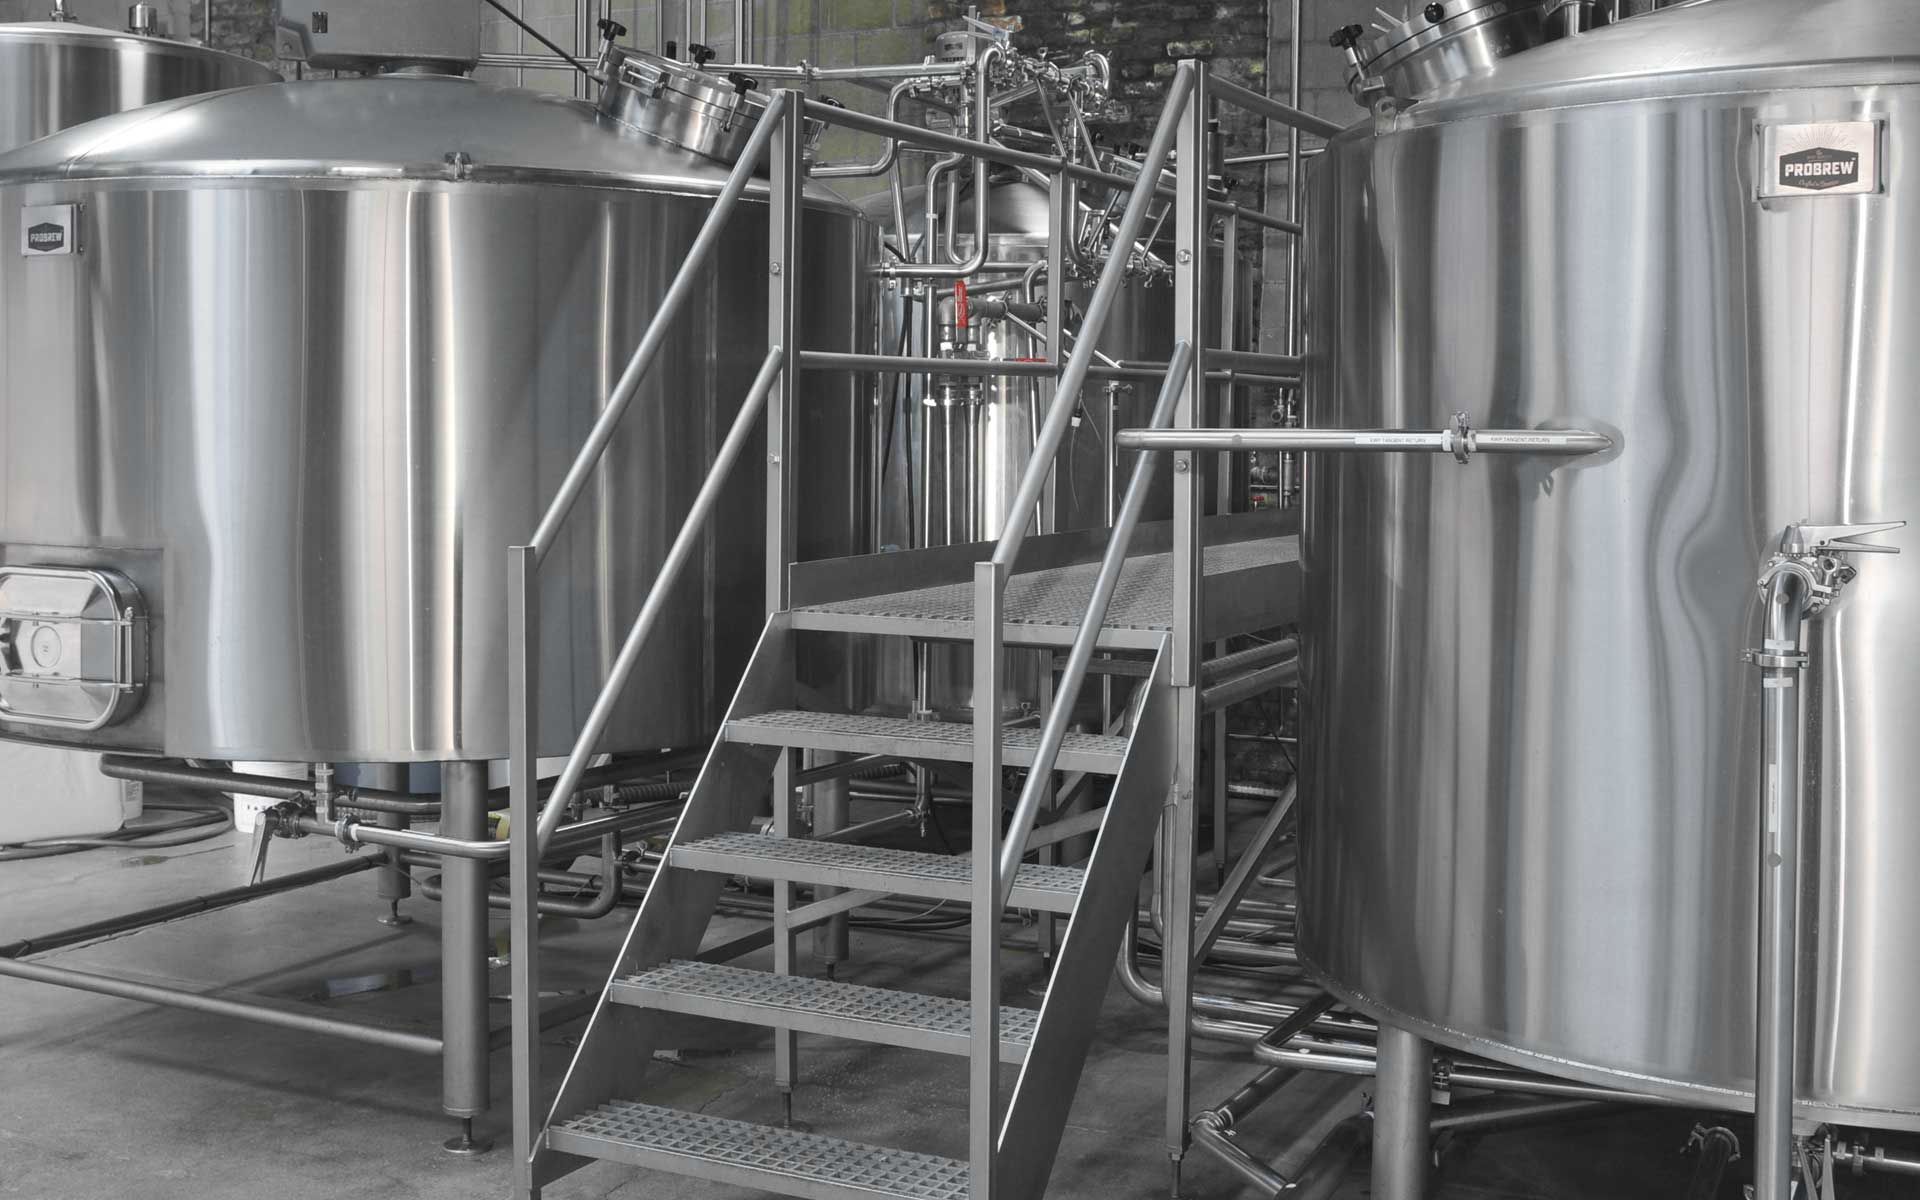 probrew_brewhouse1